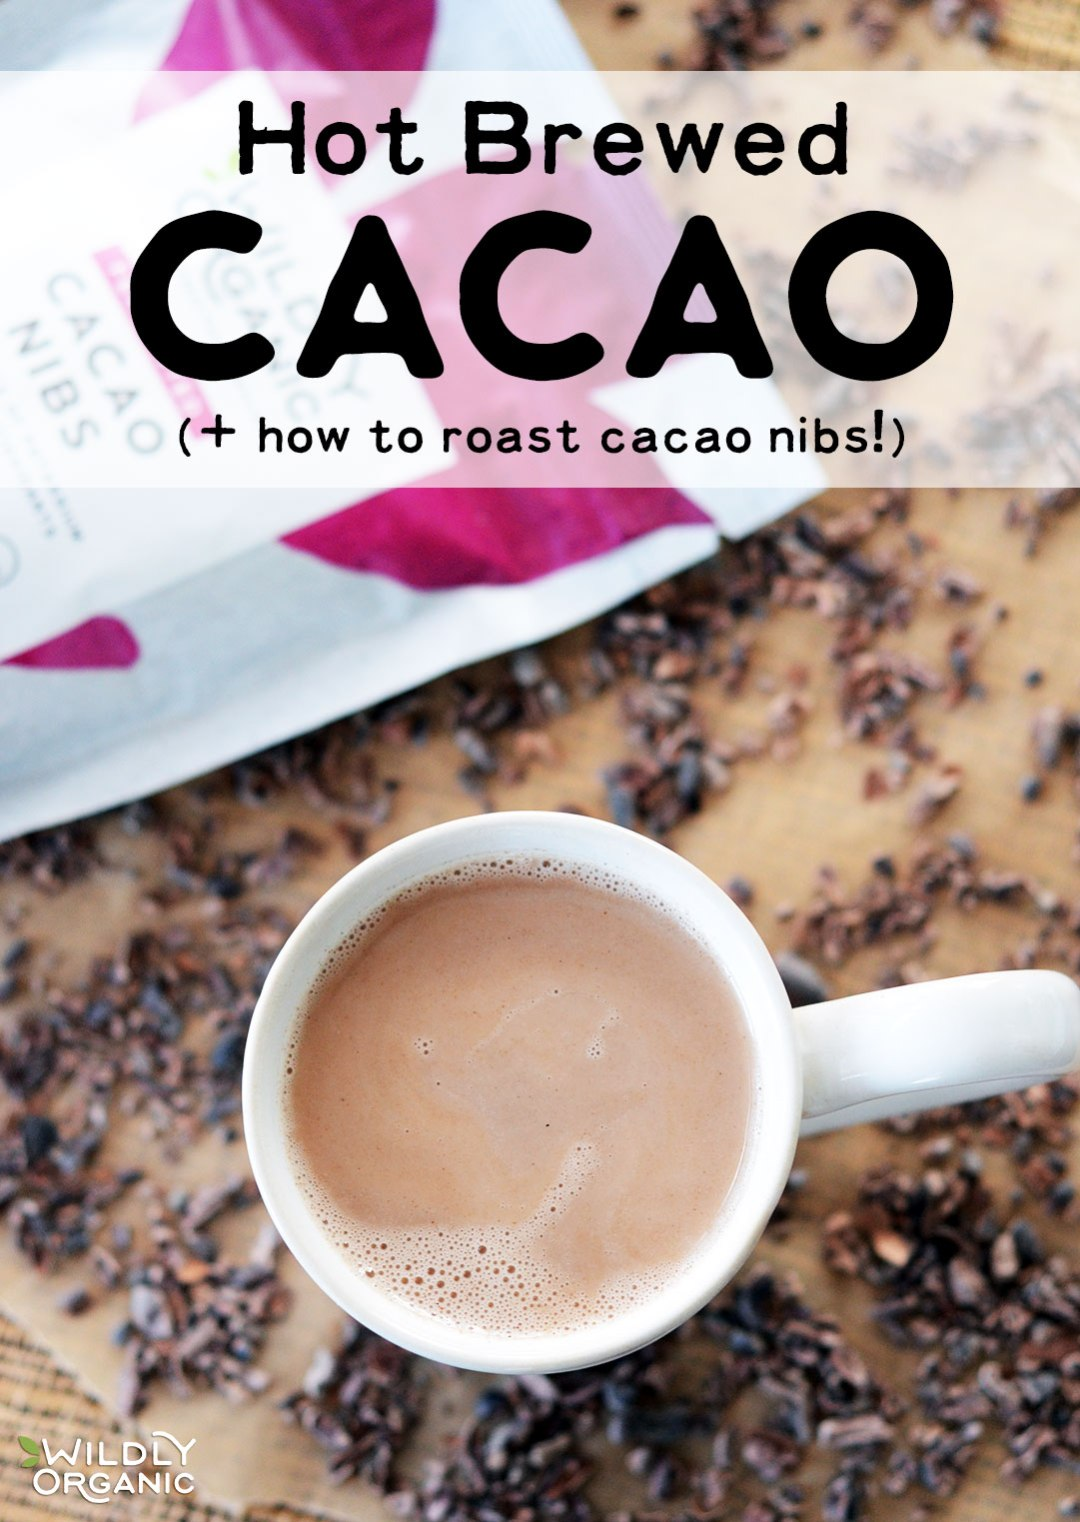 If you're avoiding coffee because of caffeine or other health issues, you you'll love Hot Brewed Cacao -- a great alternative for those trying to break the coffee habit or who simply want a healthy hot beverage option. Learn how to roast cacao nibs yourself for this antioxidant-rich drink!